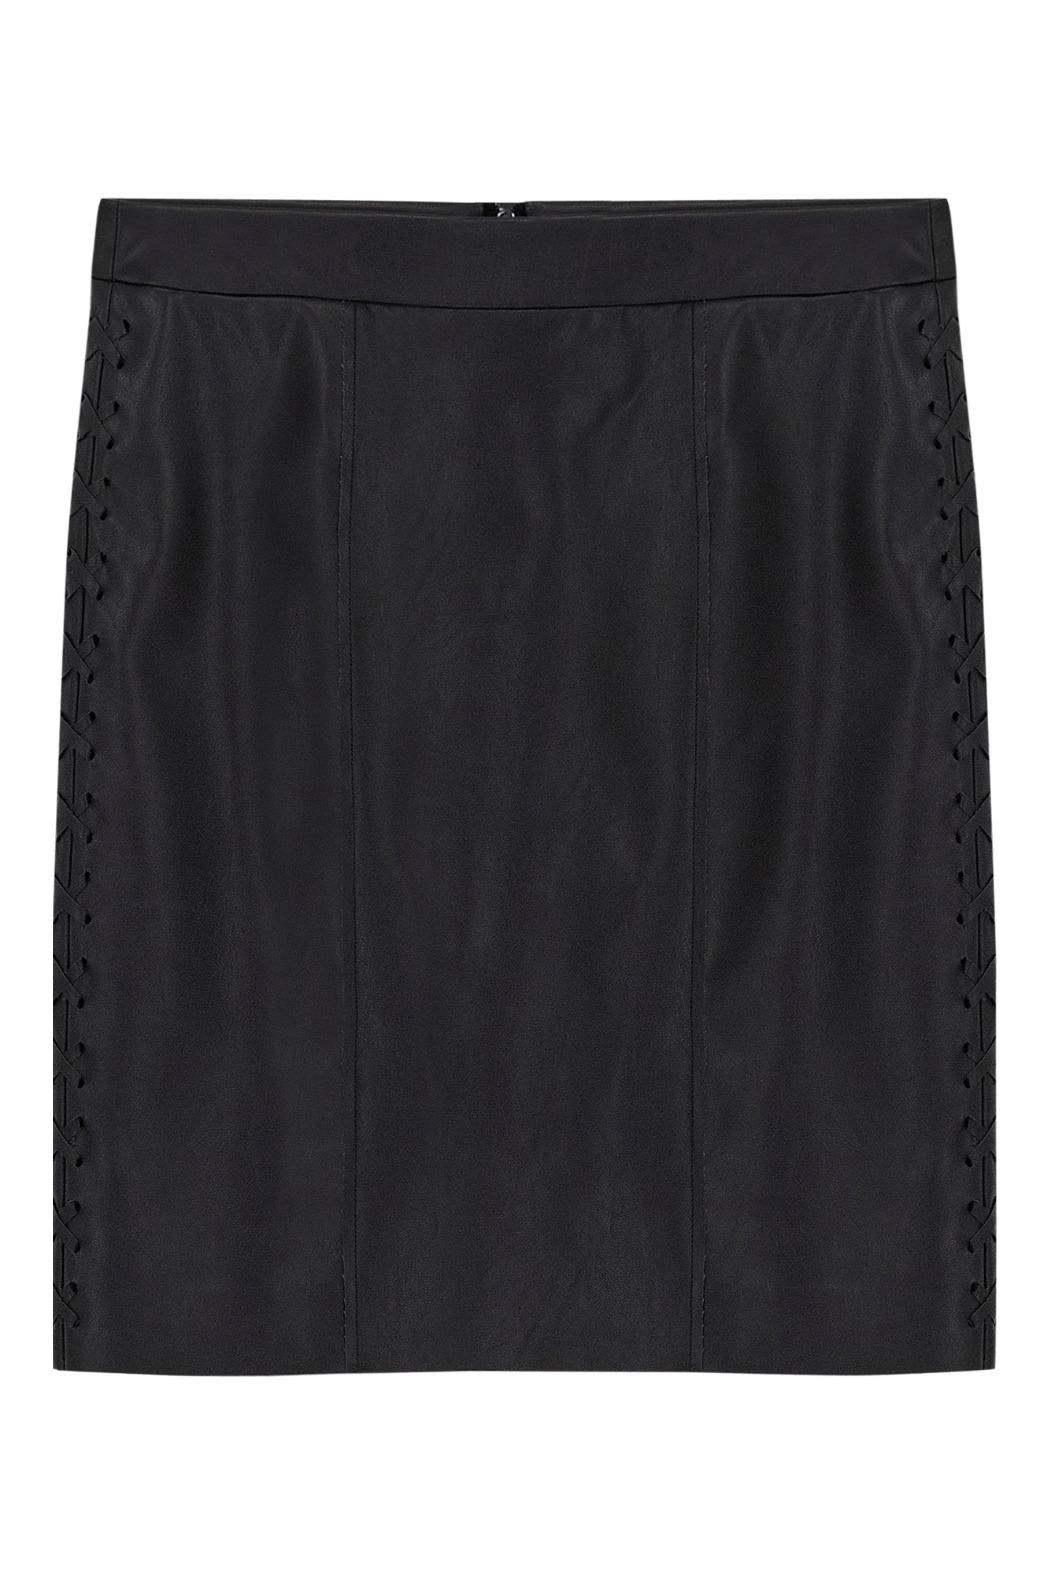 Bishop + Young Stitch Pencil Skirt - Main Image